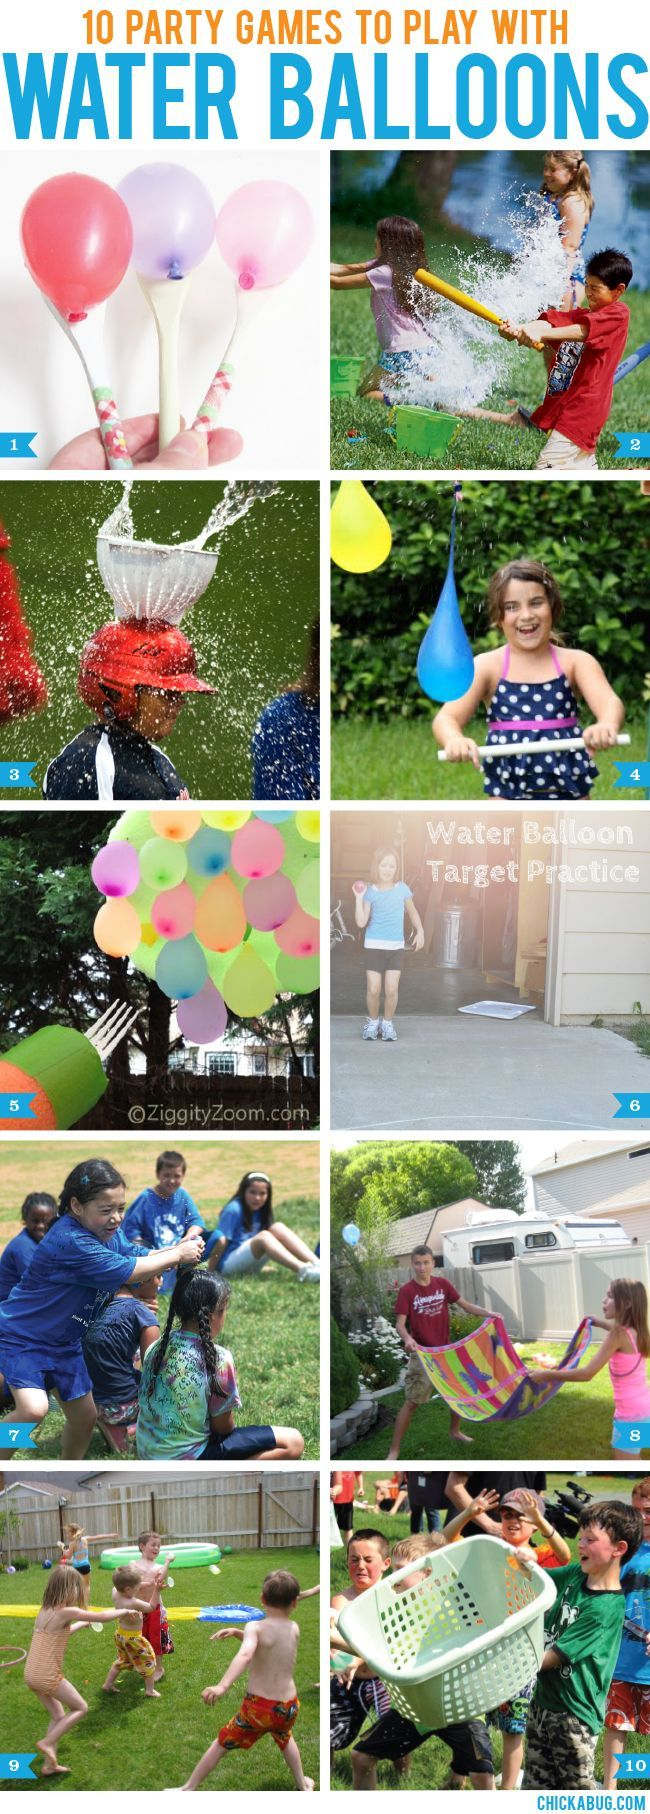 10 fun party games you can play with water balloons Fun